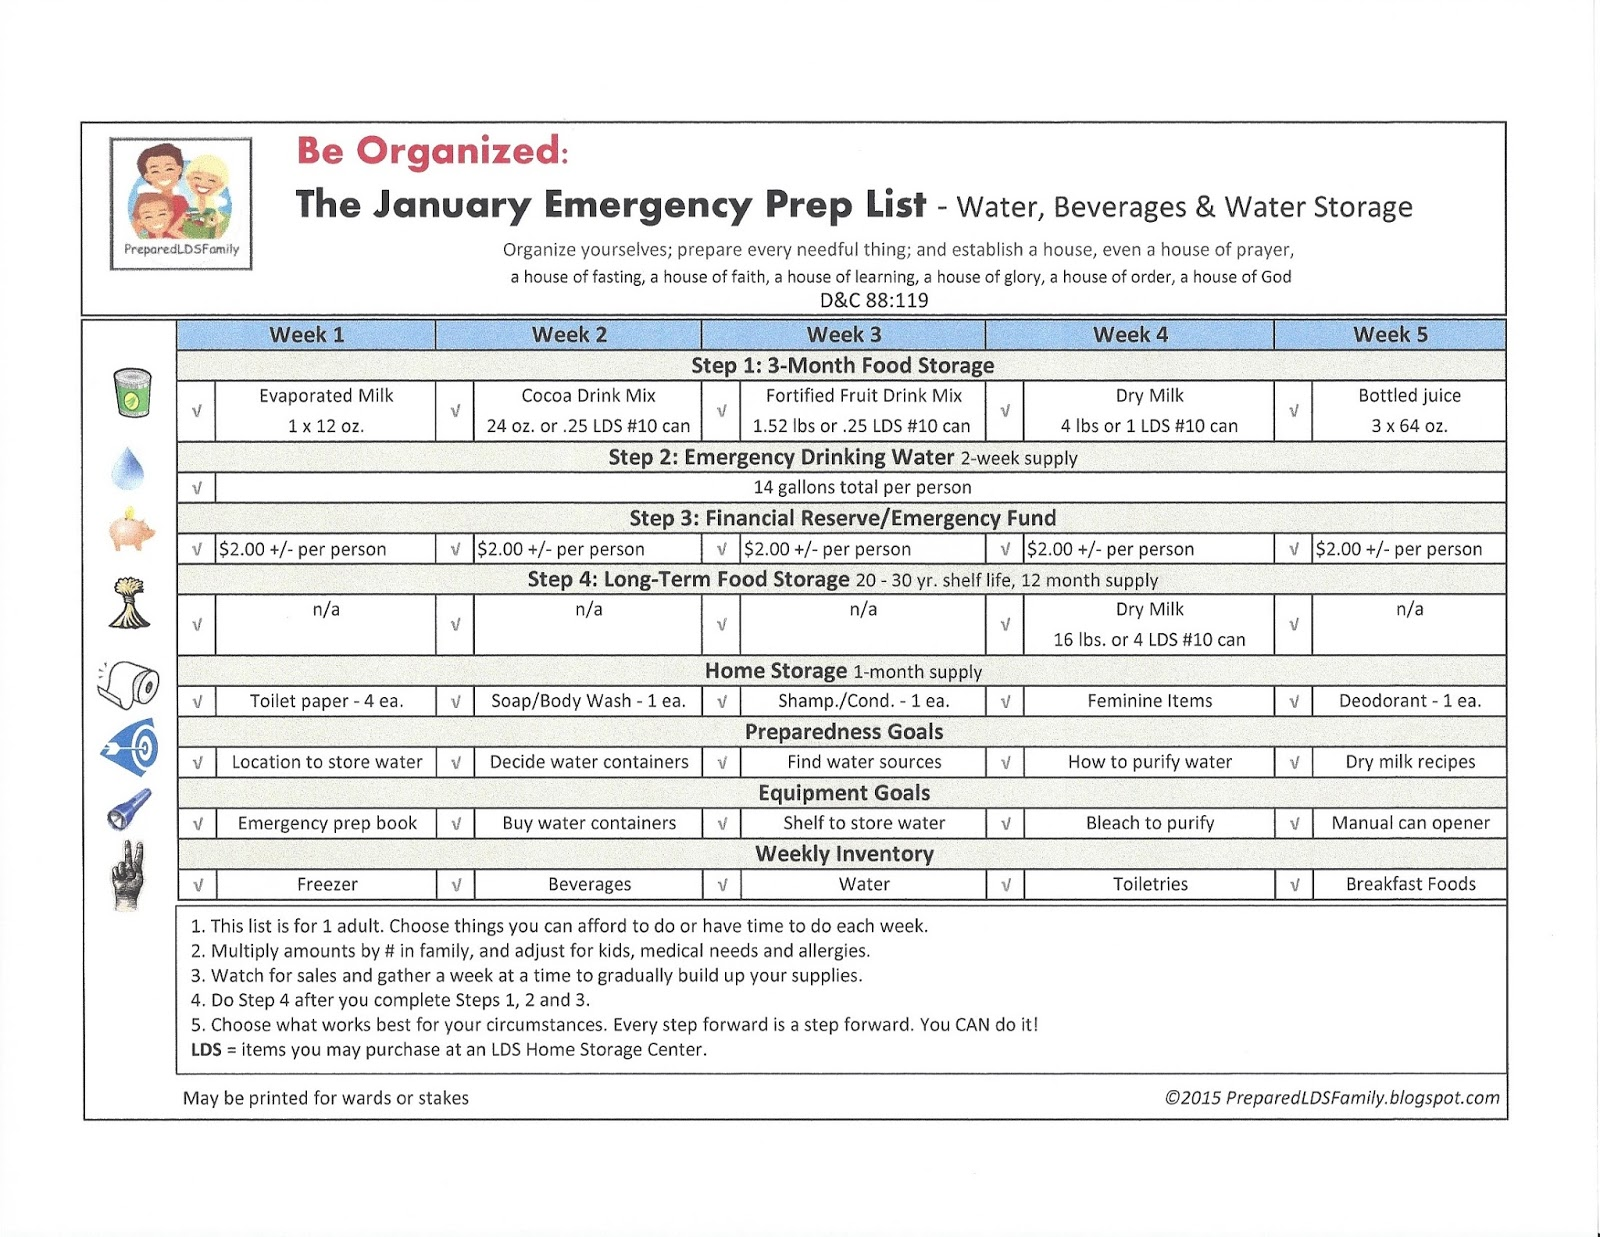 Prepared lds family 12 monthly emergency prep lists january water beverages and water storage click here for printable january list click here for the january 2017 emergency prep calendar coming forumfinder